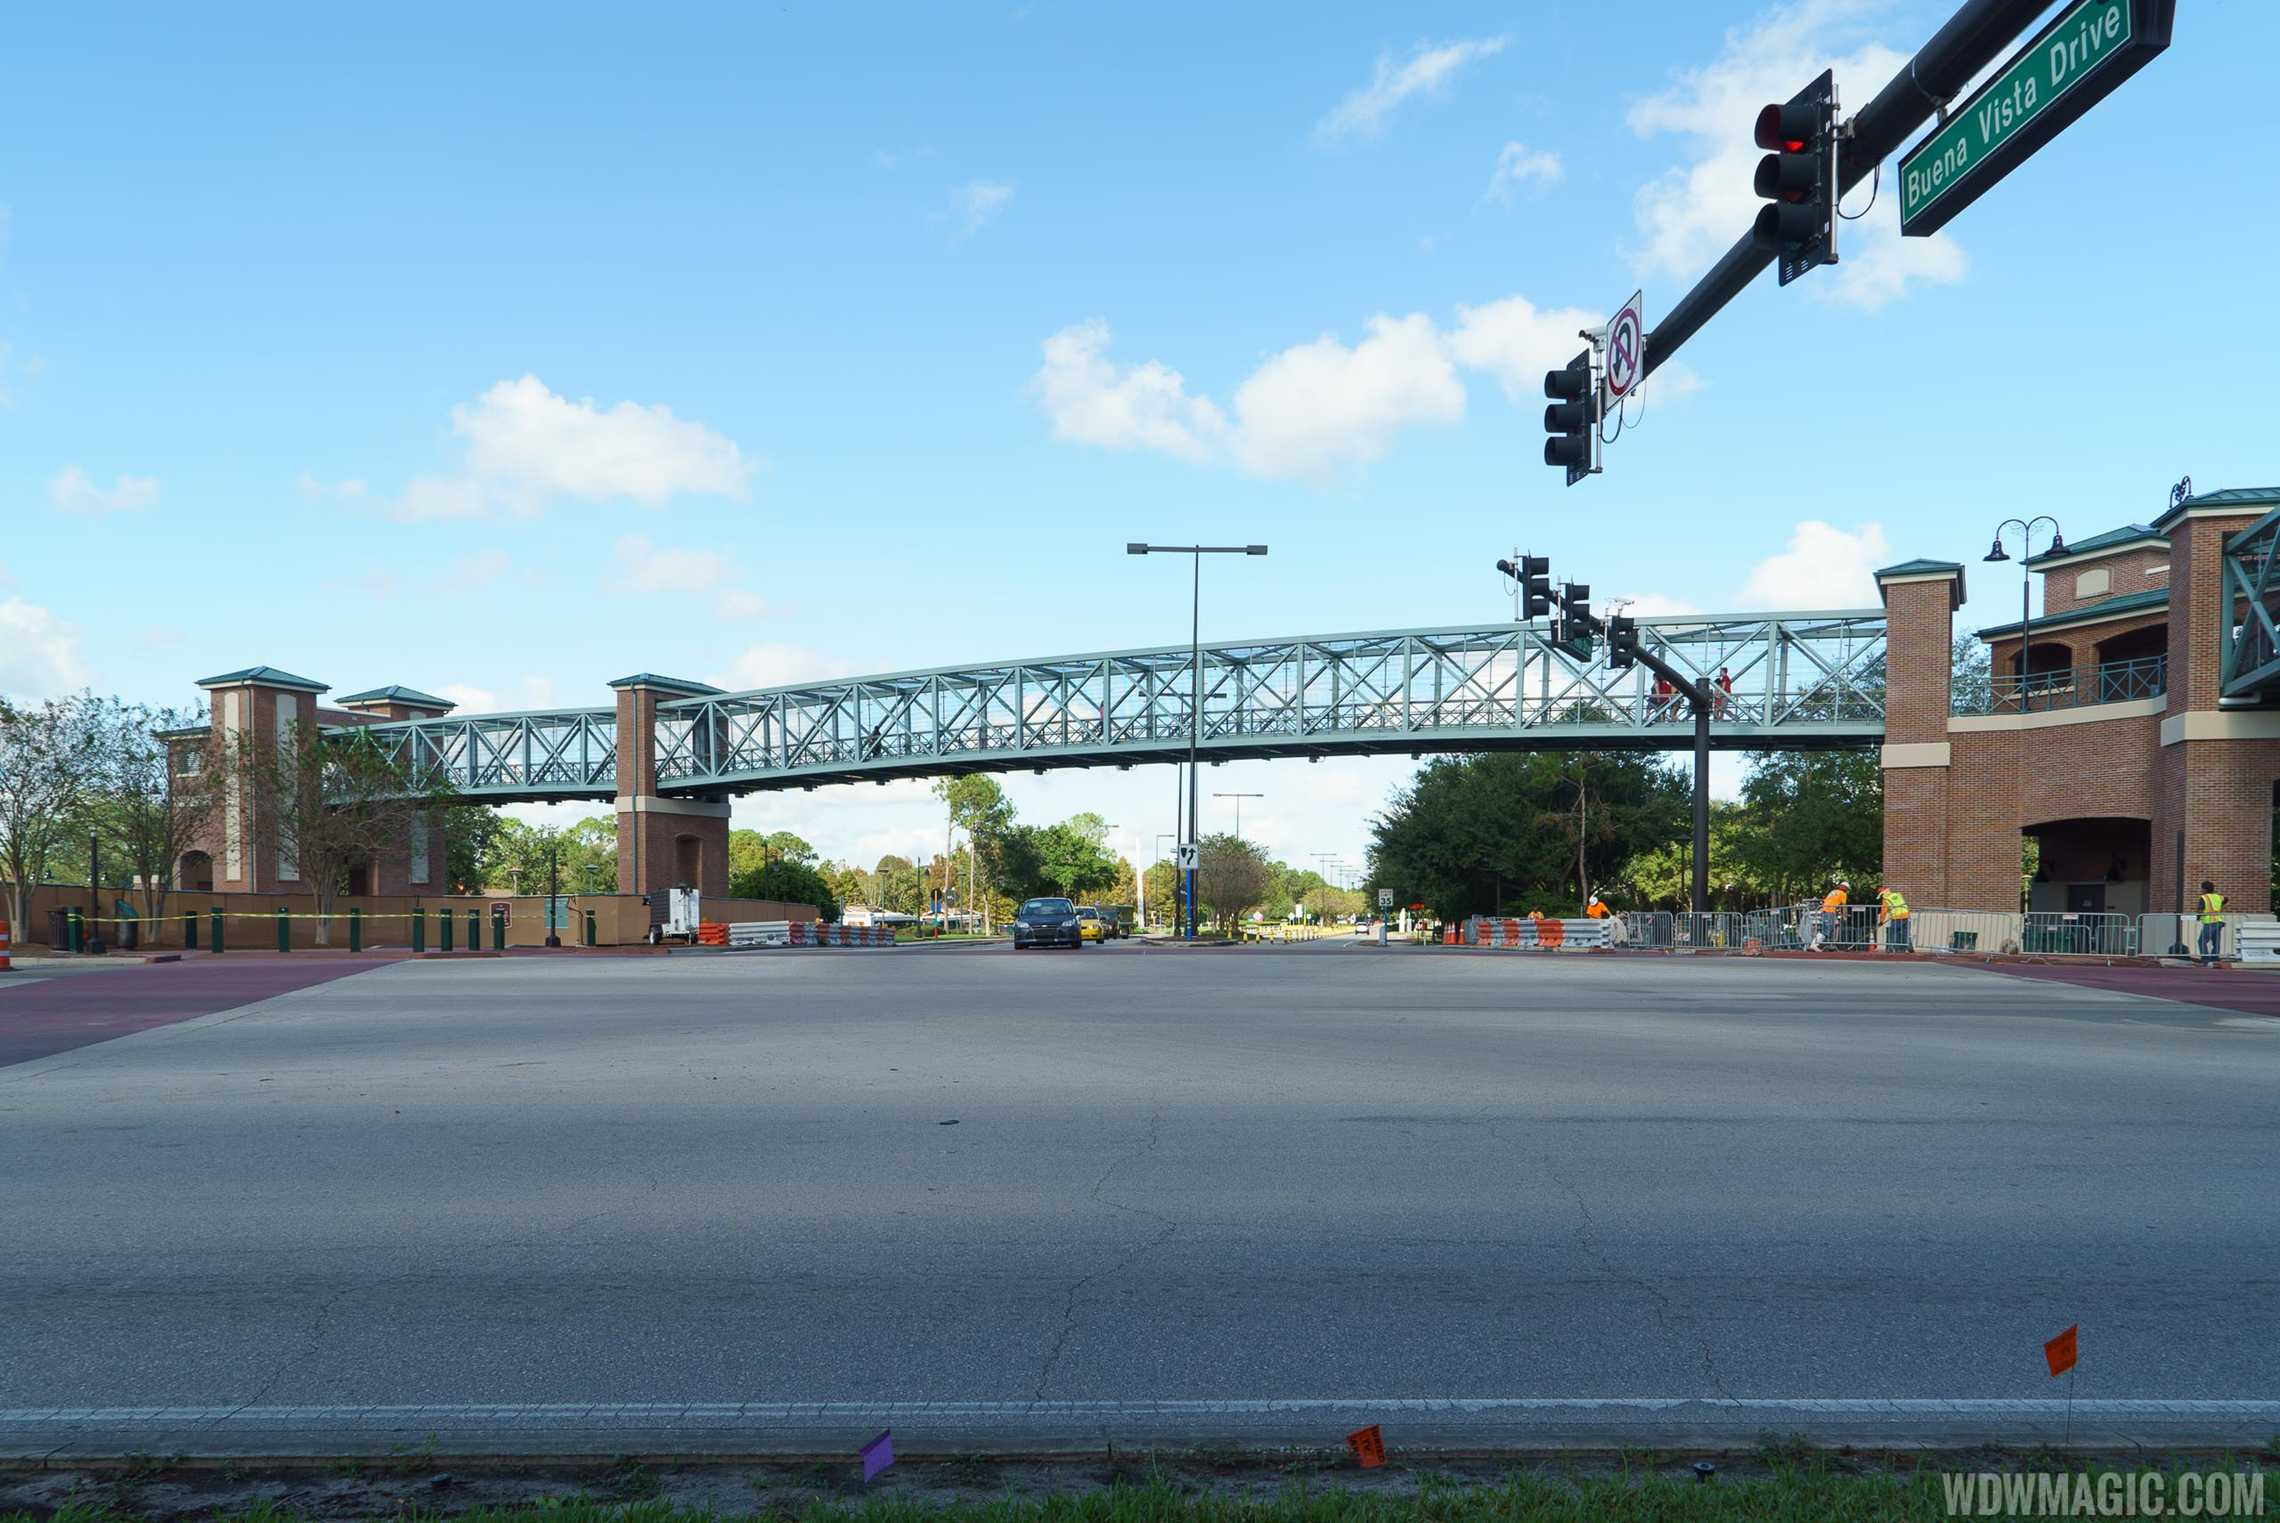 View of the Buena Vista Drive span